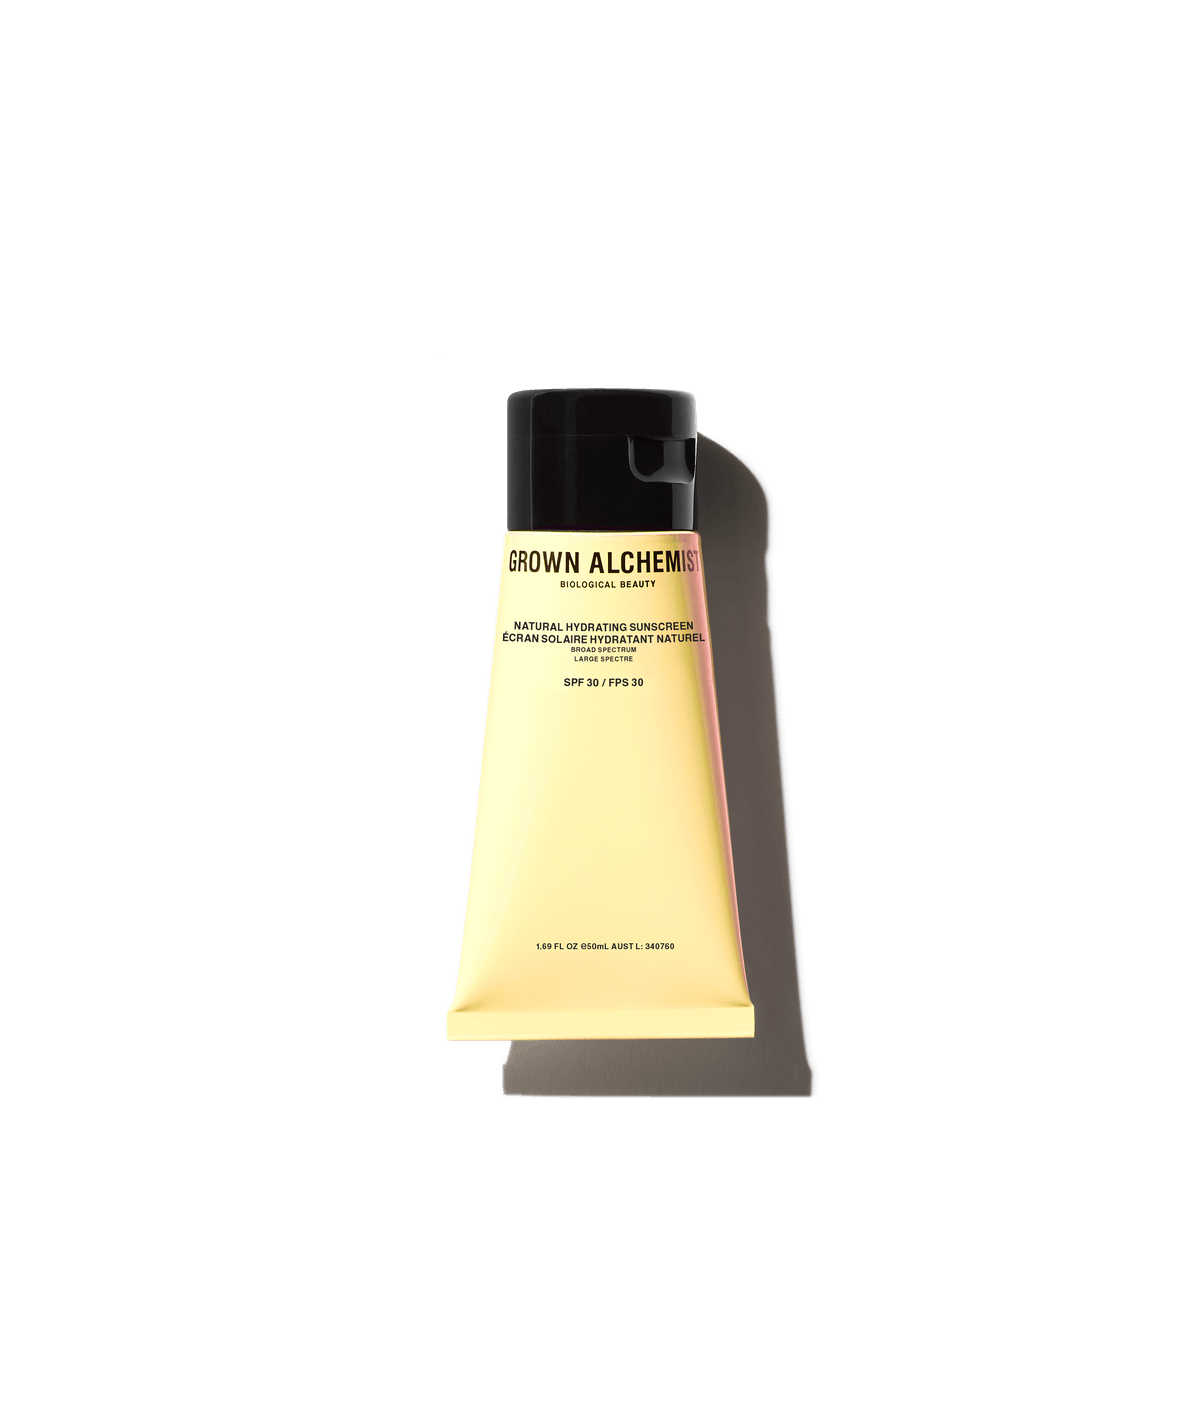 Natural Hydrating Sunscreen Broad Spectrum SPF 30